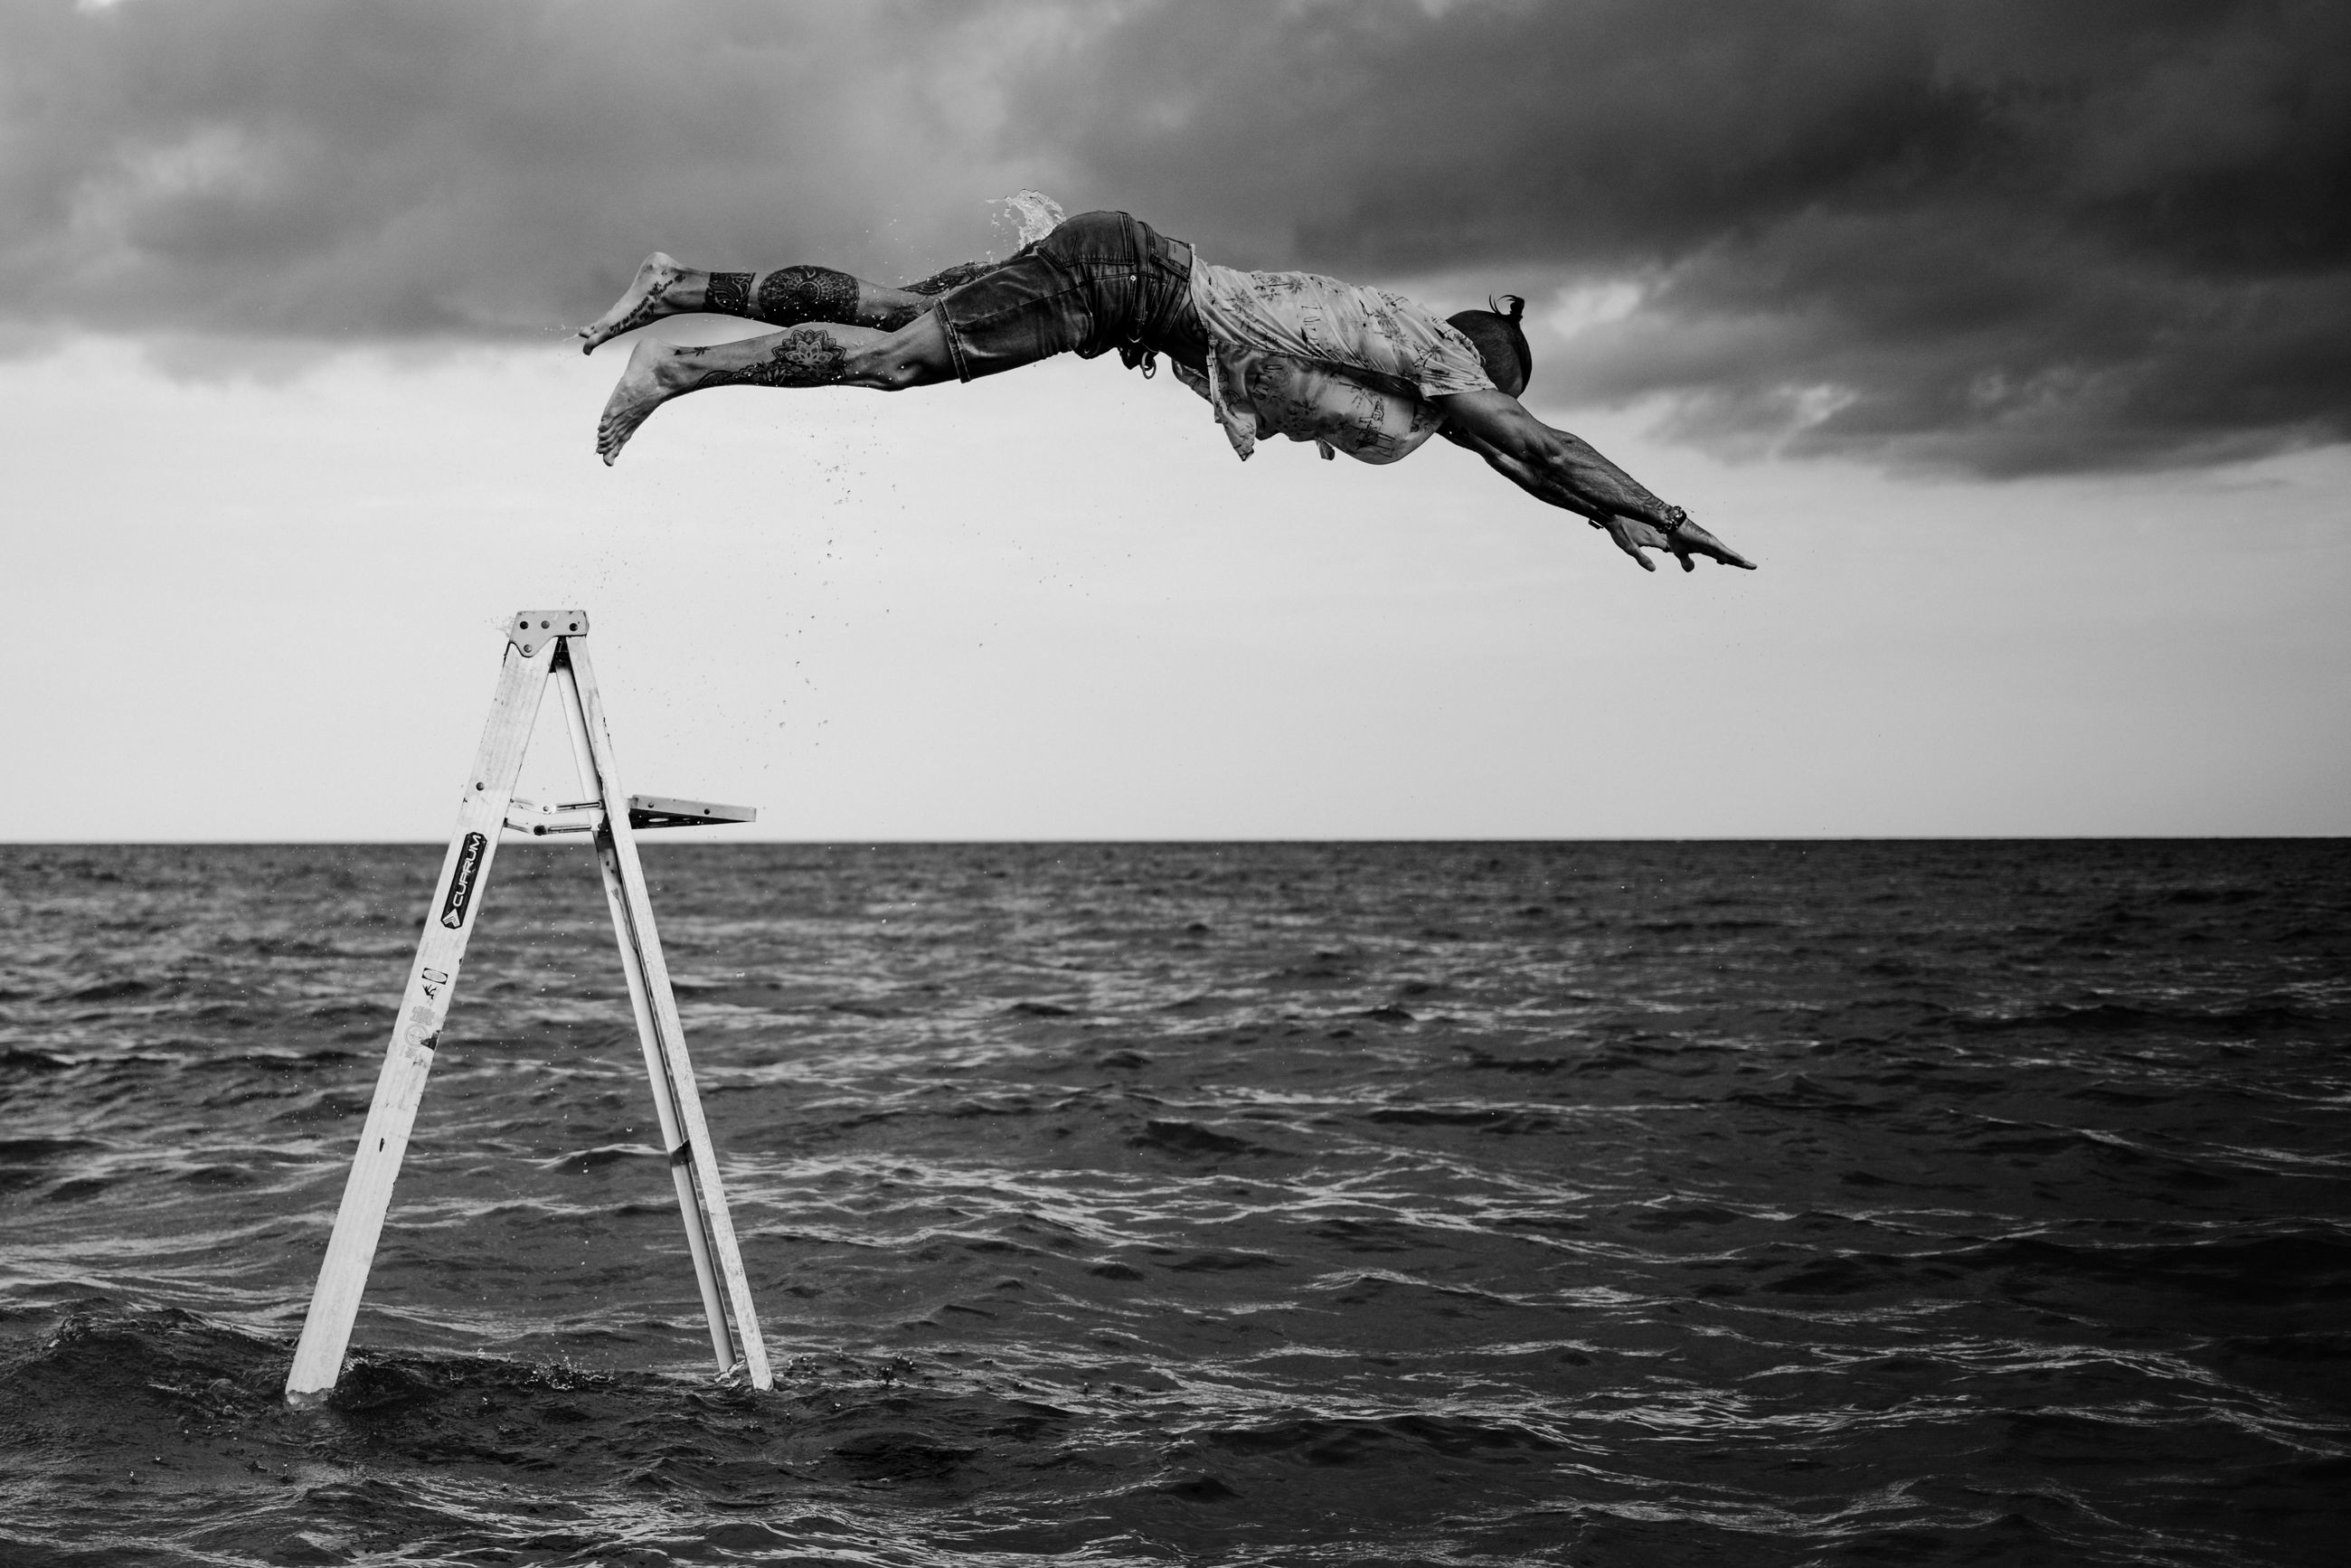 water, sea, sky, black and white, monochrome photography, horizon, monochrome, cloud, horizon over water, nature, wind, ocean, wave, beauty in nature, land, scenics - nature, motion, black, day, outdoors, animal, mid-air, beach, jumping